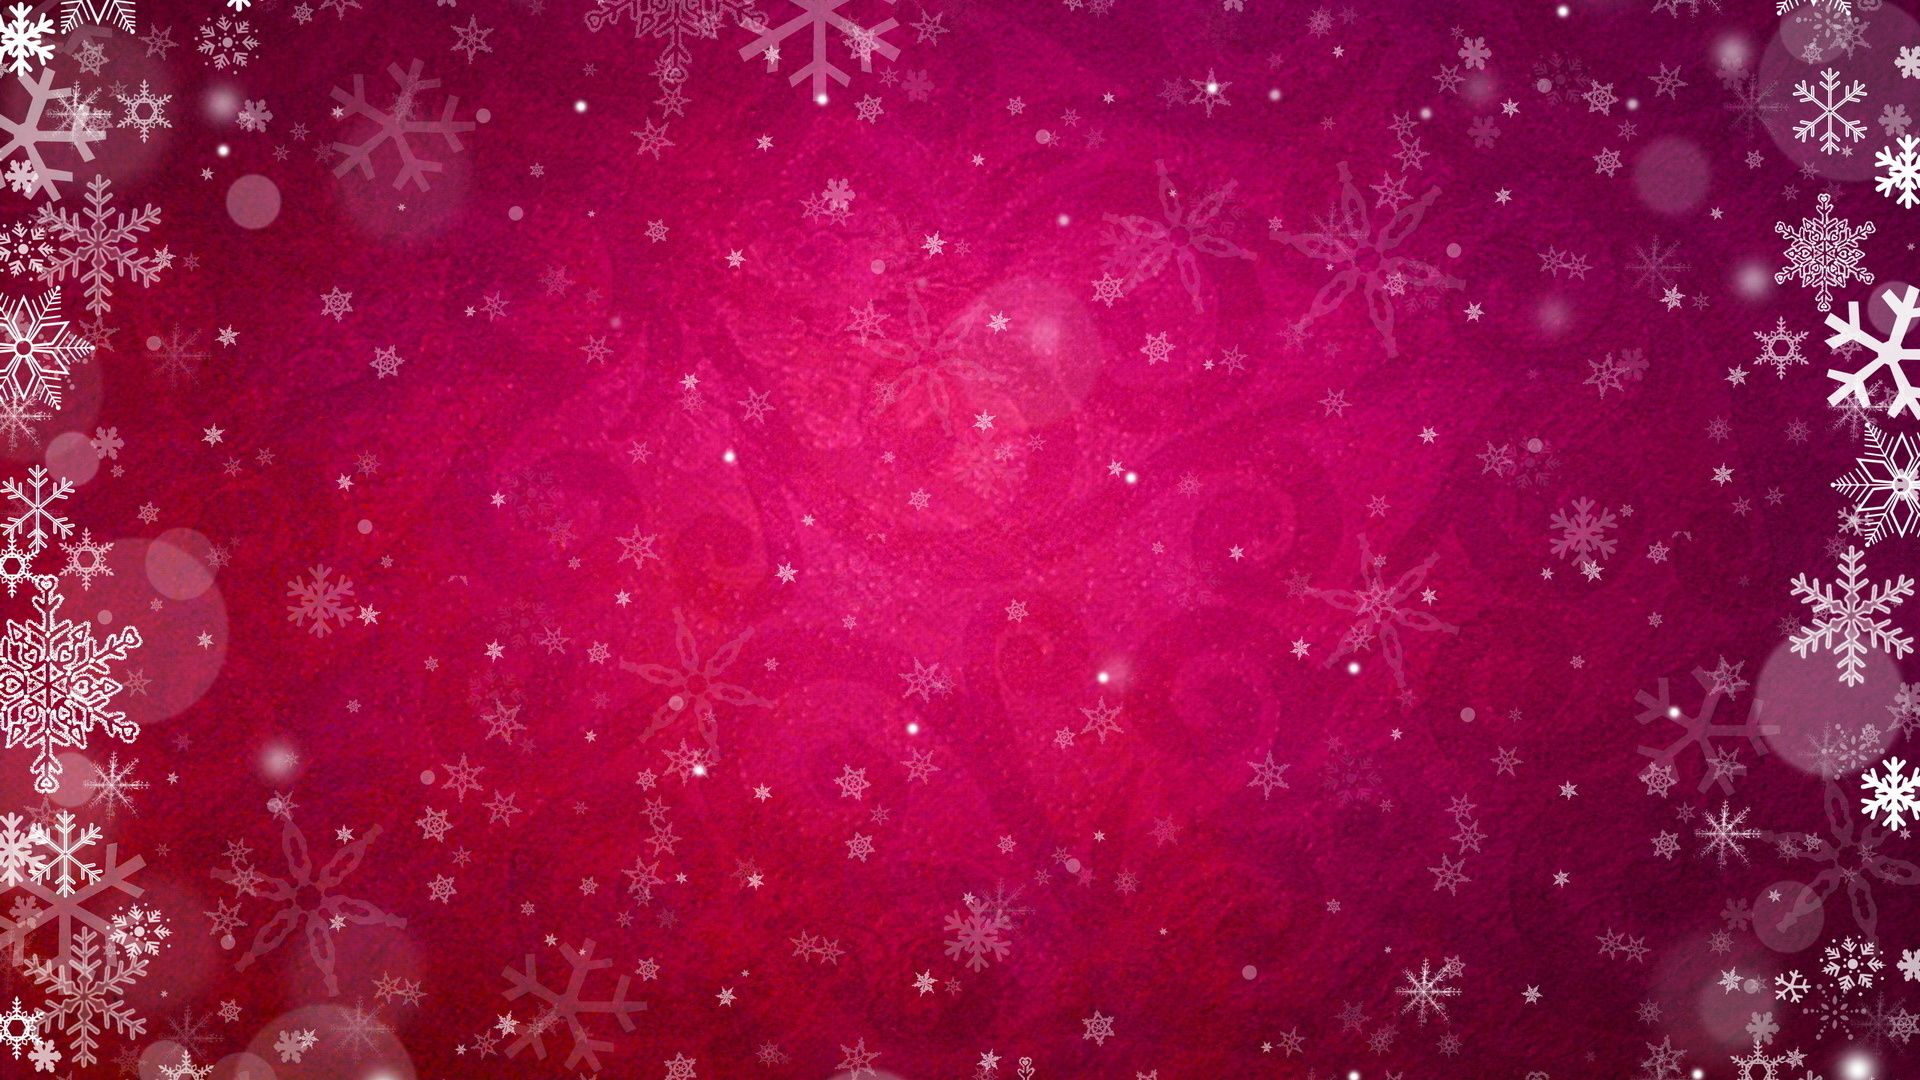 pink-snowflakes-background